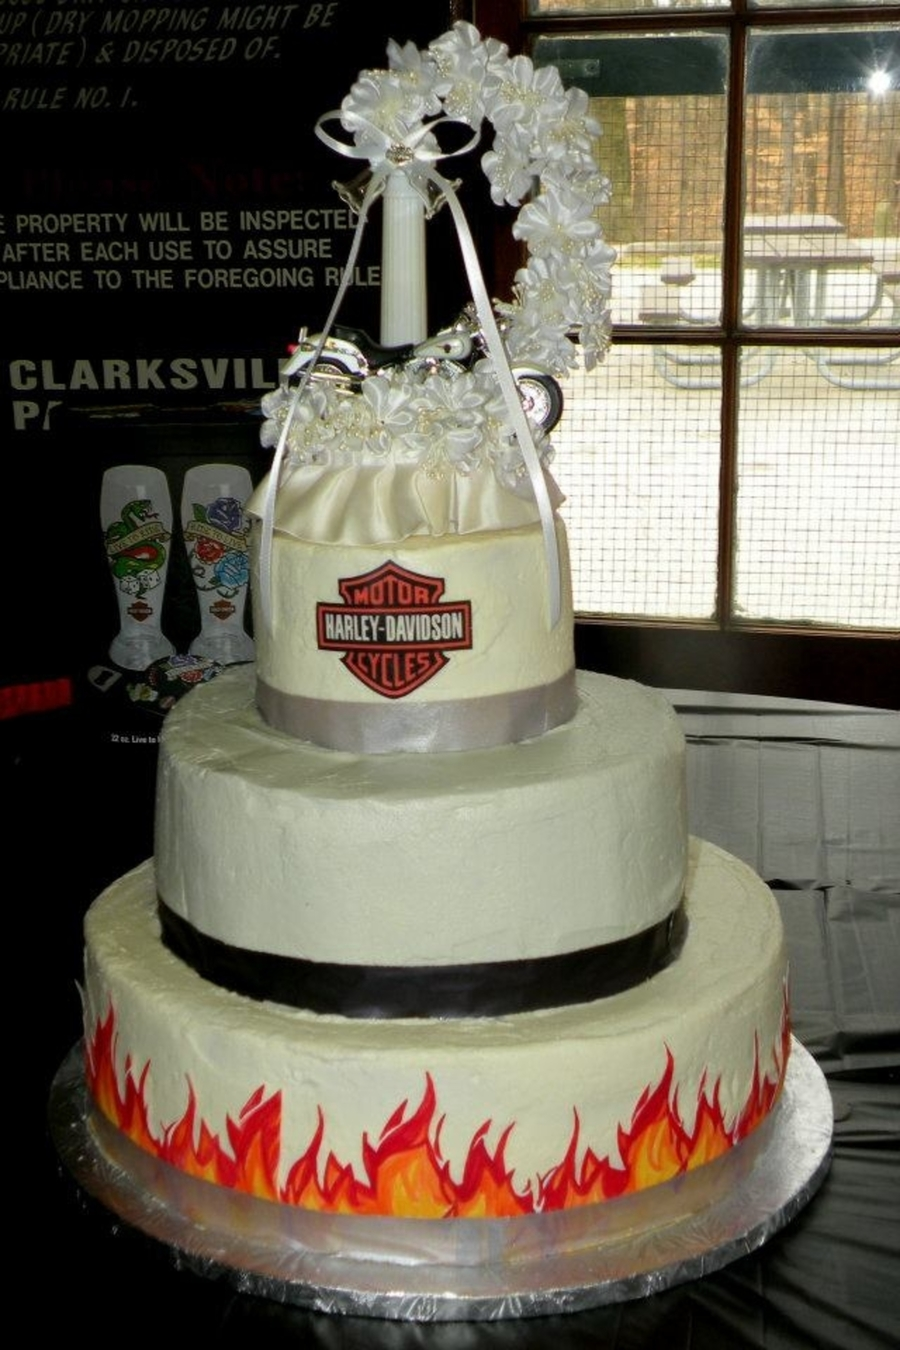 Harley Davidson Wedding Cake On Central